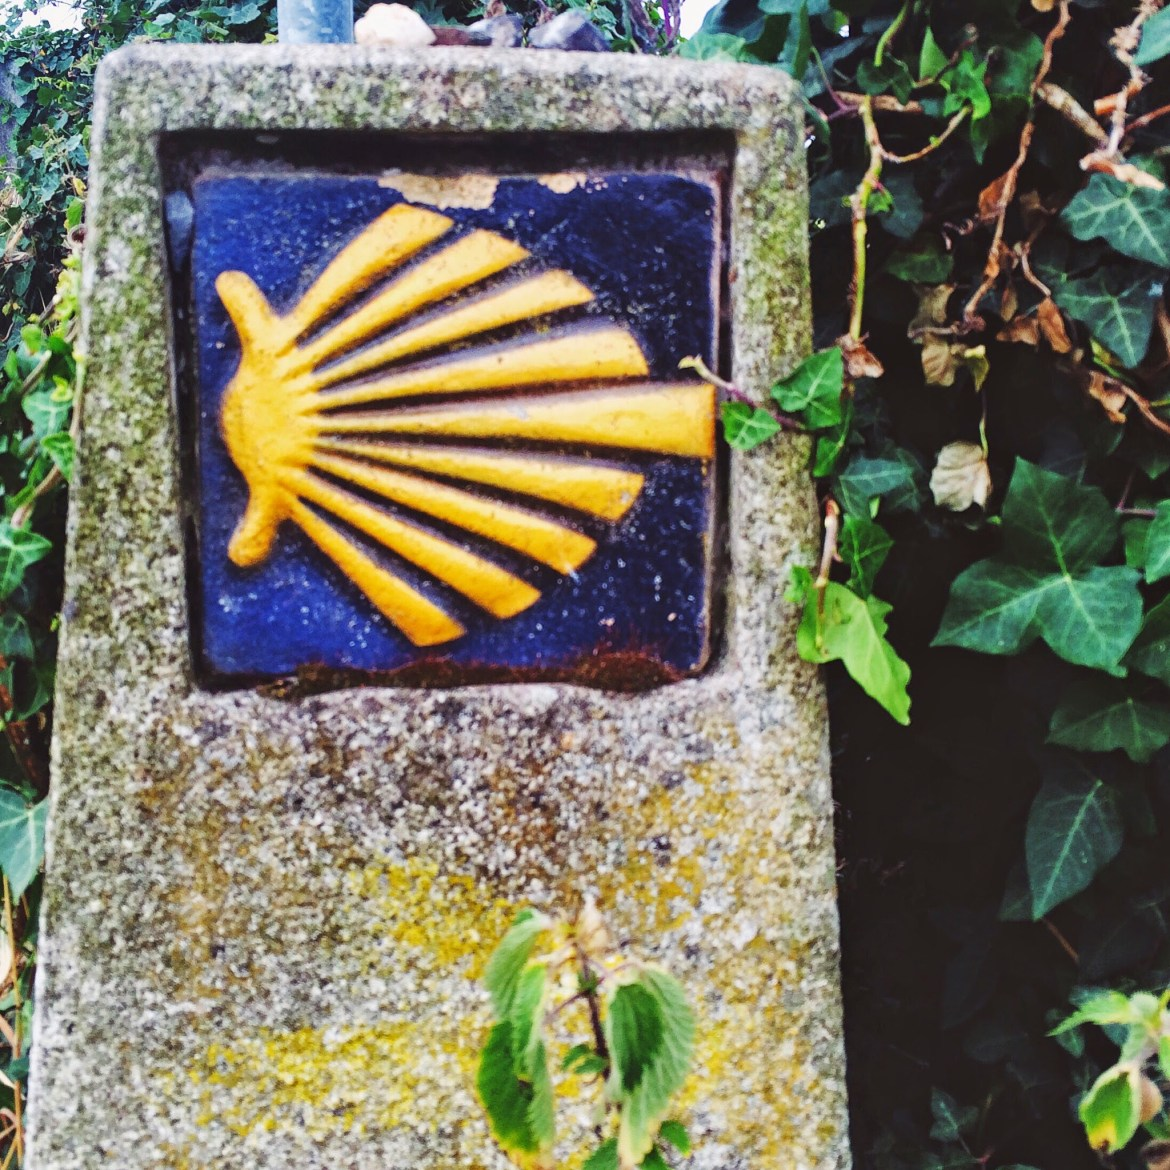 Return to the Camino